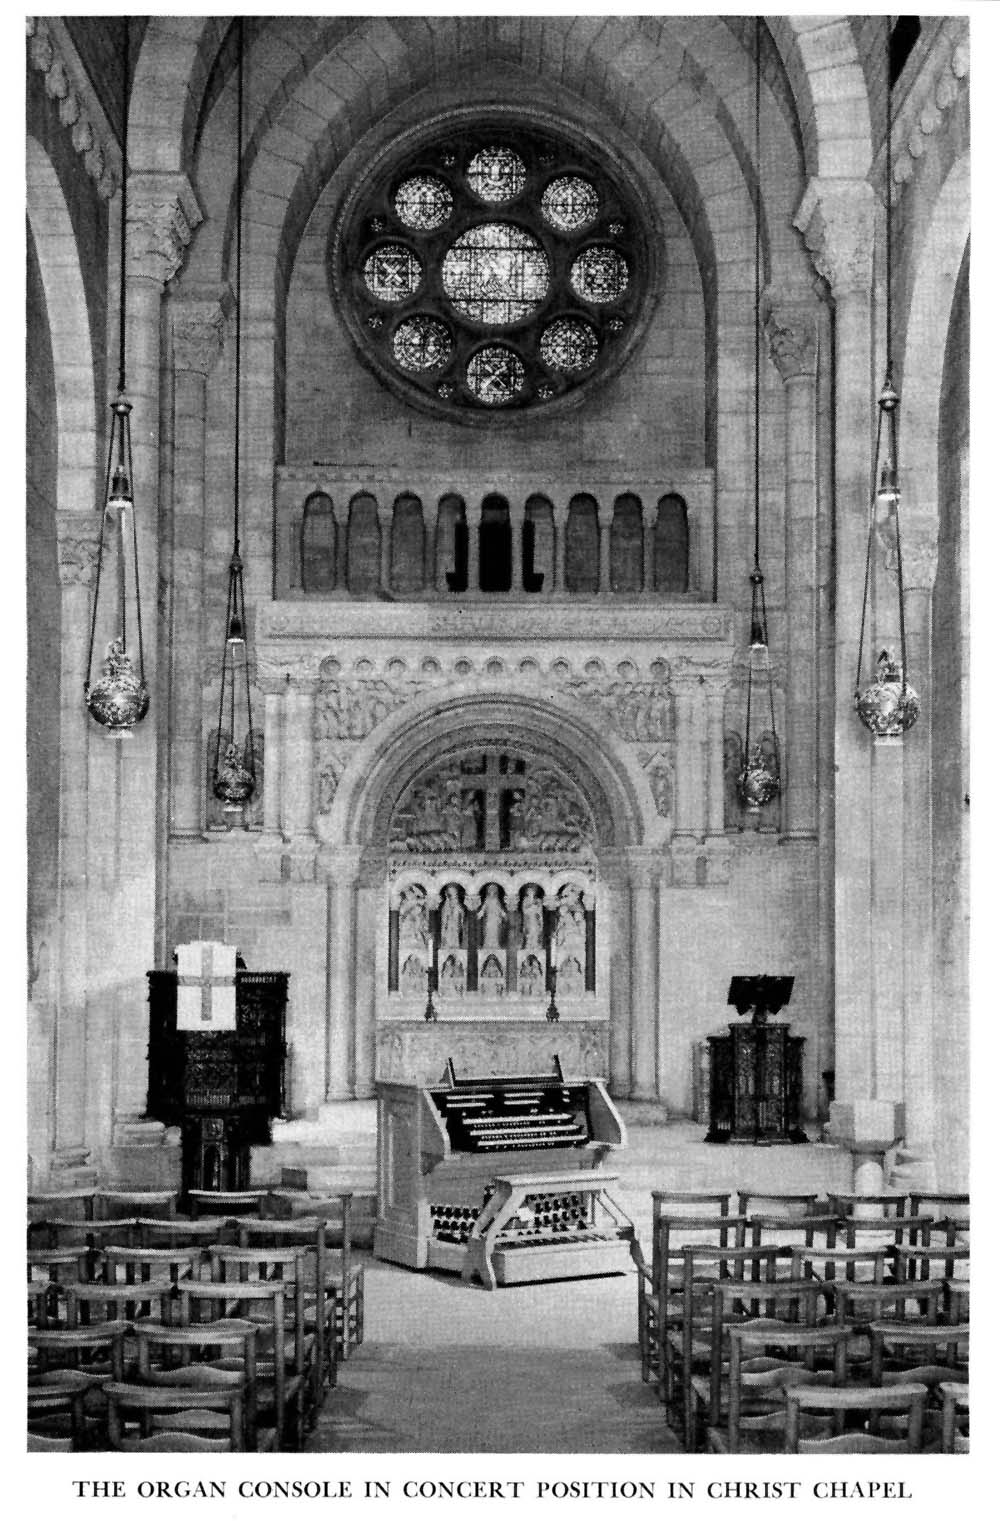 Austin Organ, Op. 2343 (1959-60) in Christ Chapel of the Riverside Church - New York City (photo: The Riverside Church Archive)